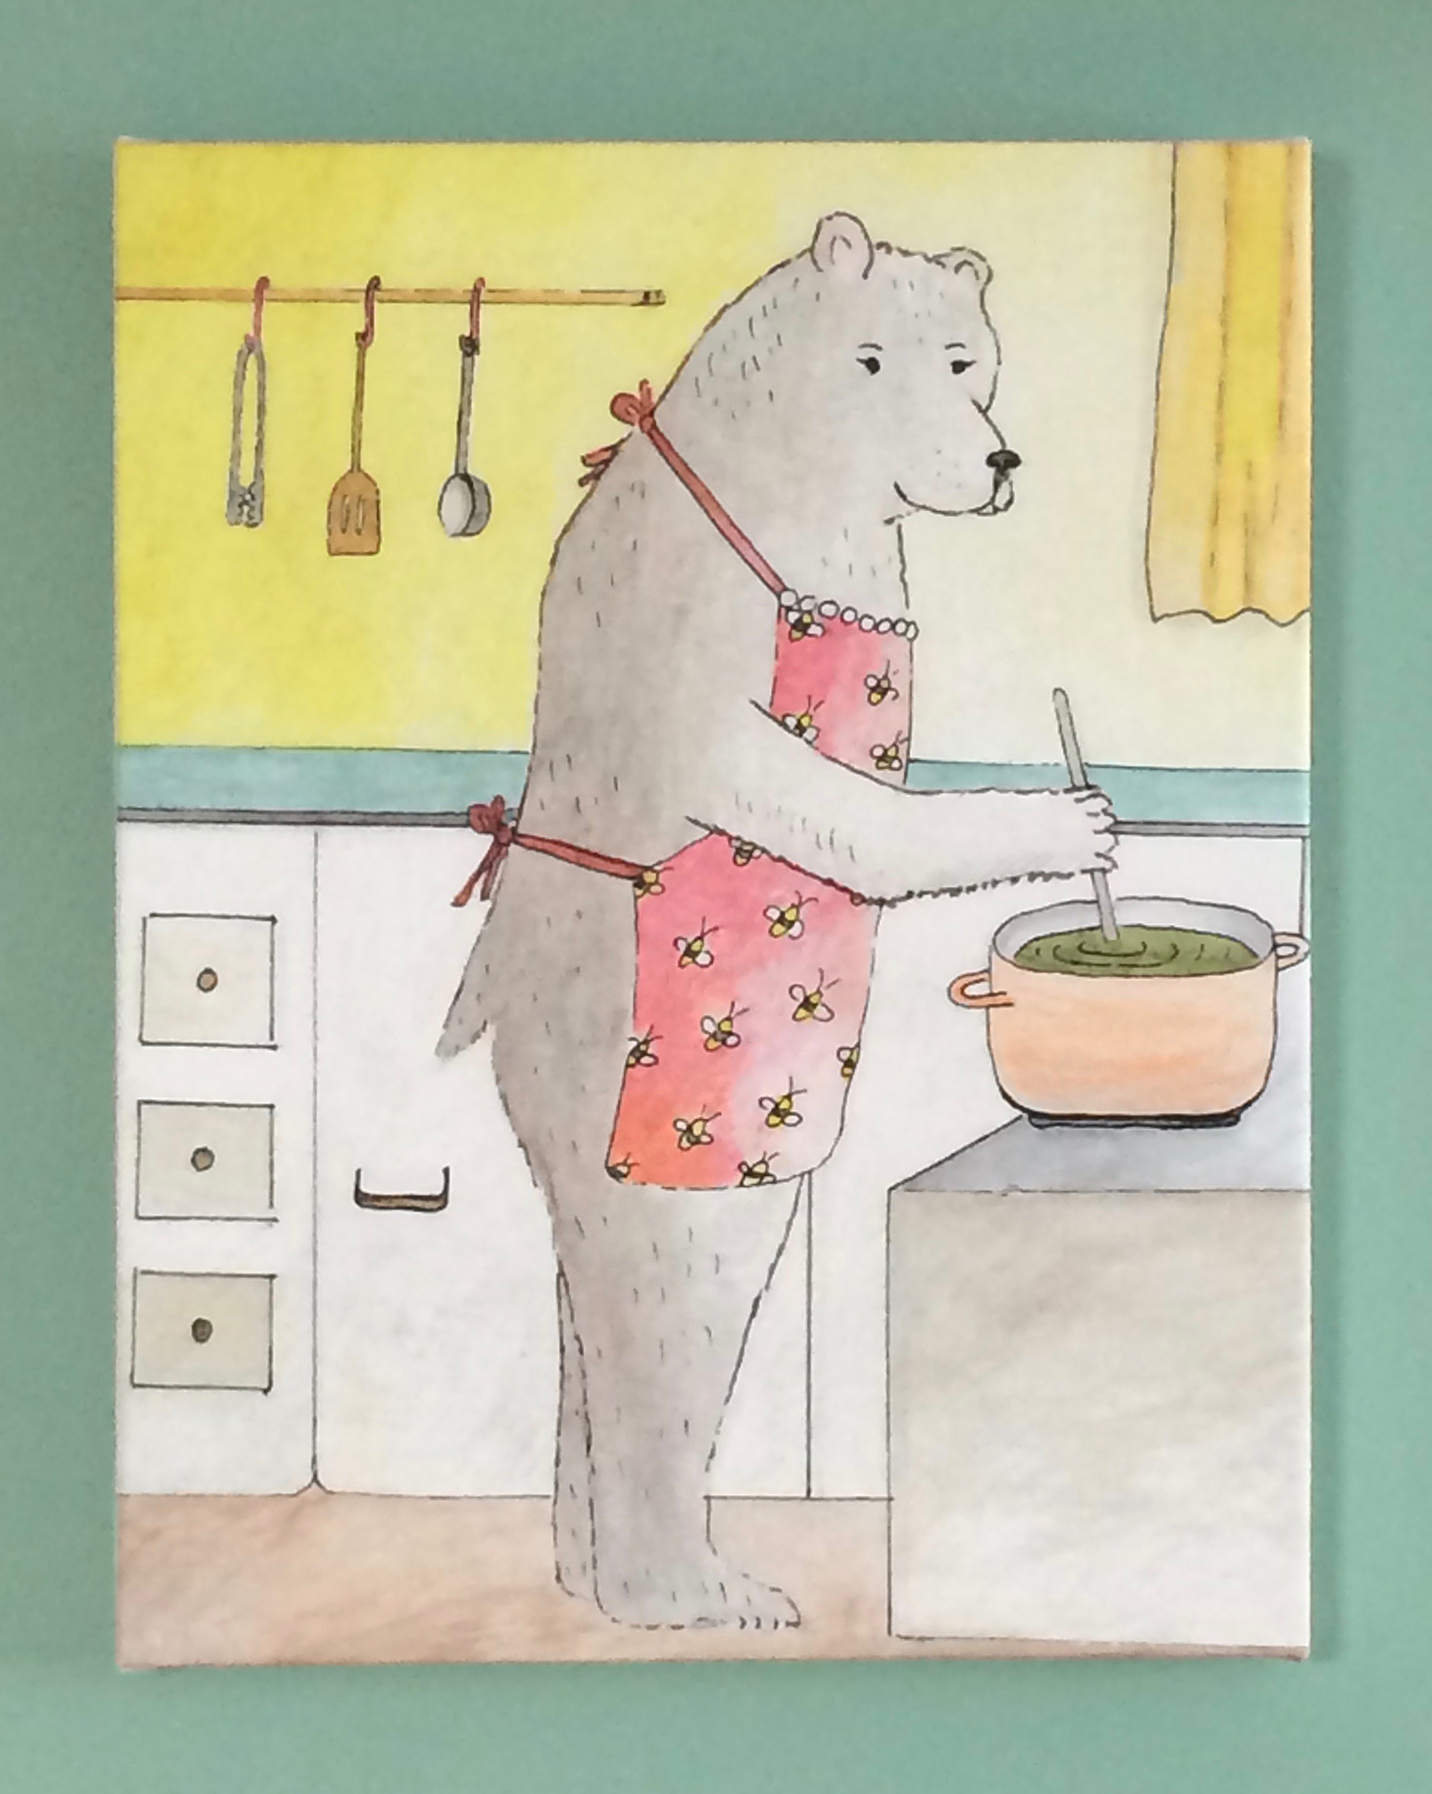 mrs-bear-painting-got-sold-christina-hughes-art-and-illustration-blog.jpg